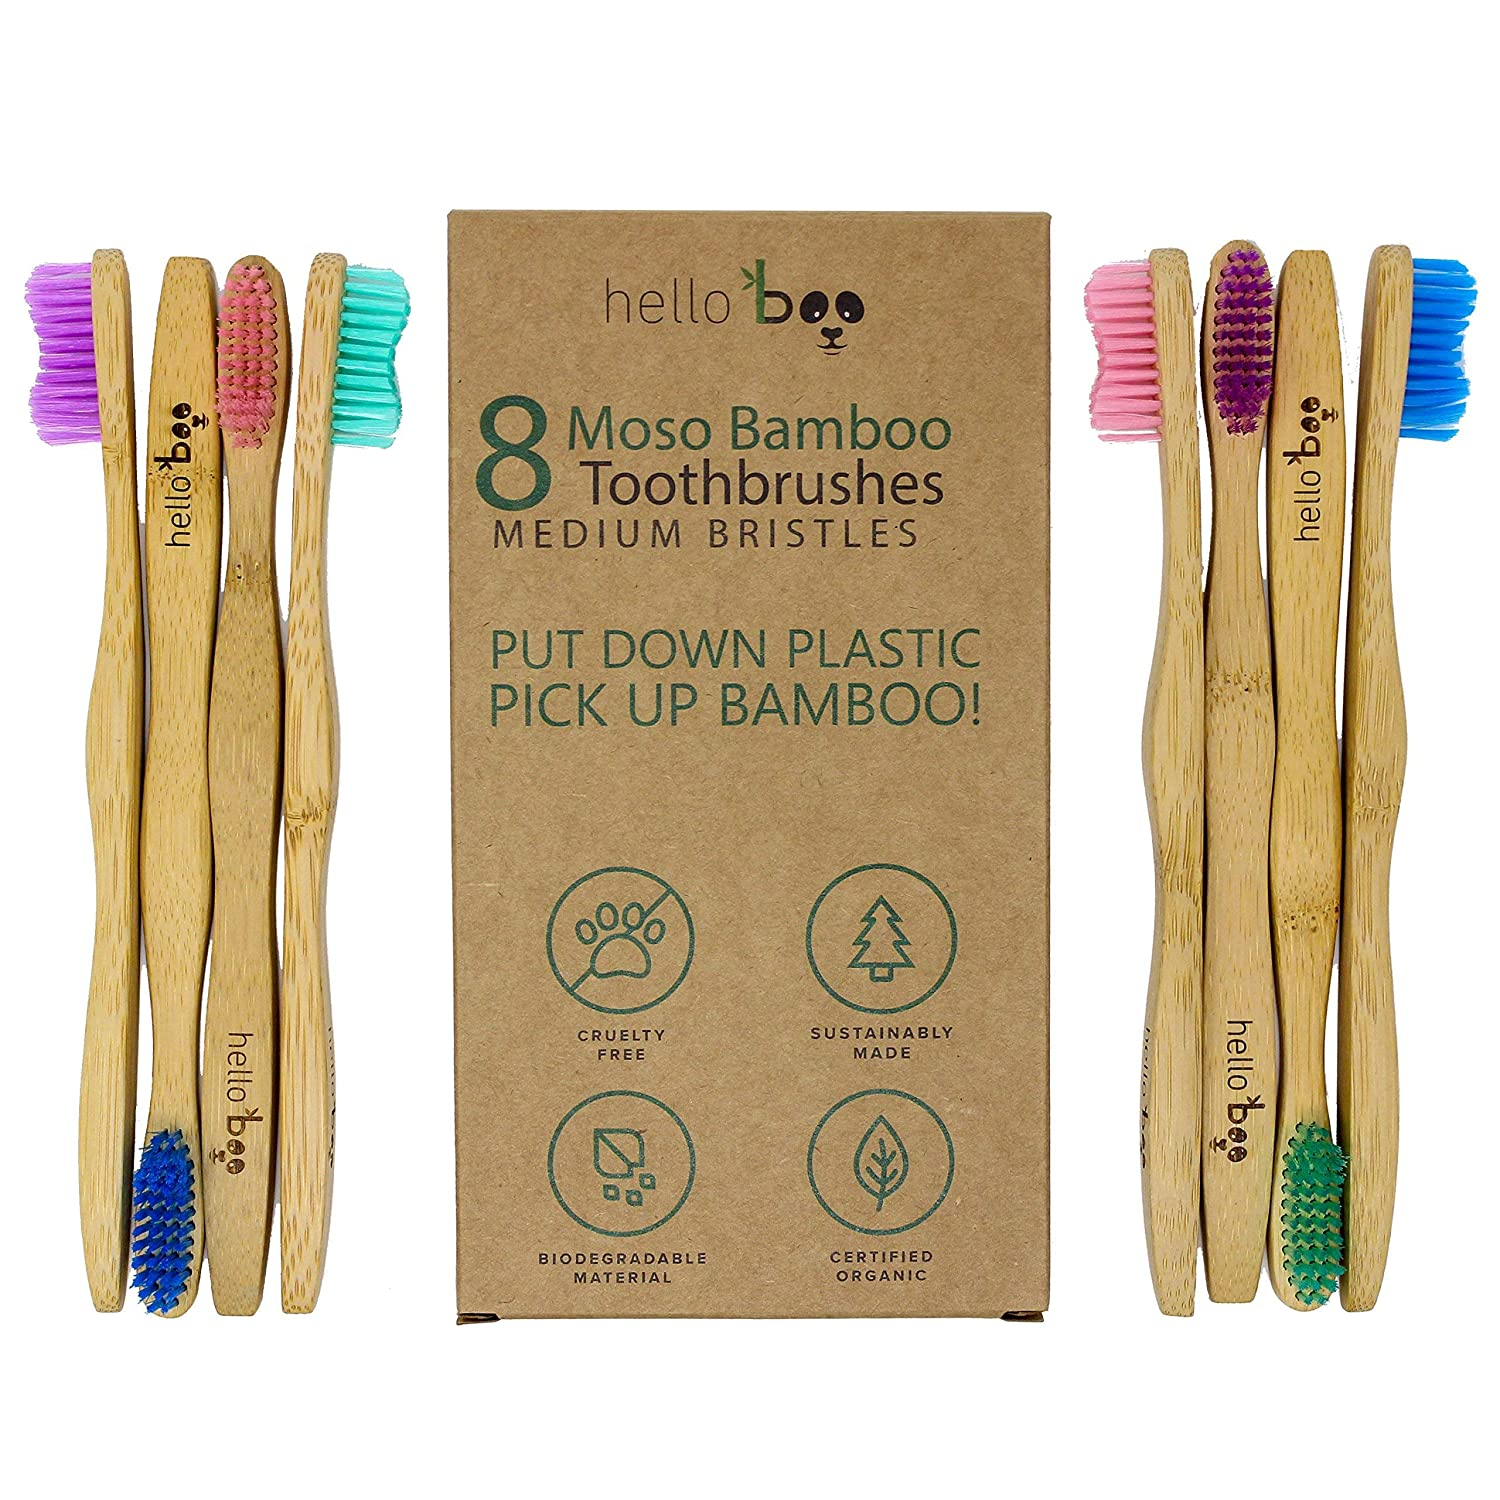 Bamboo Toothbrush for Adults 8-Pack Biodegradable Tooth Brush Set - Organic Eco-Friendly Moso Bamboo with Ergonomic Handles & Medium BPA Free Nylon Bristles | By HELLO BOO (Adults) One Diamond K inc.